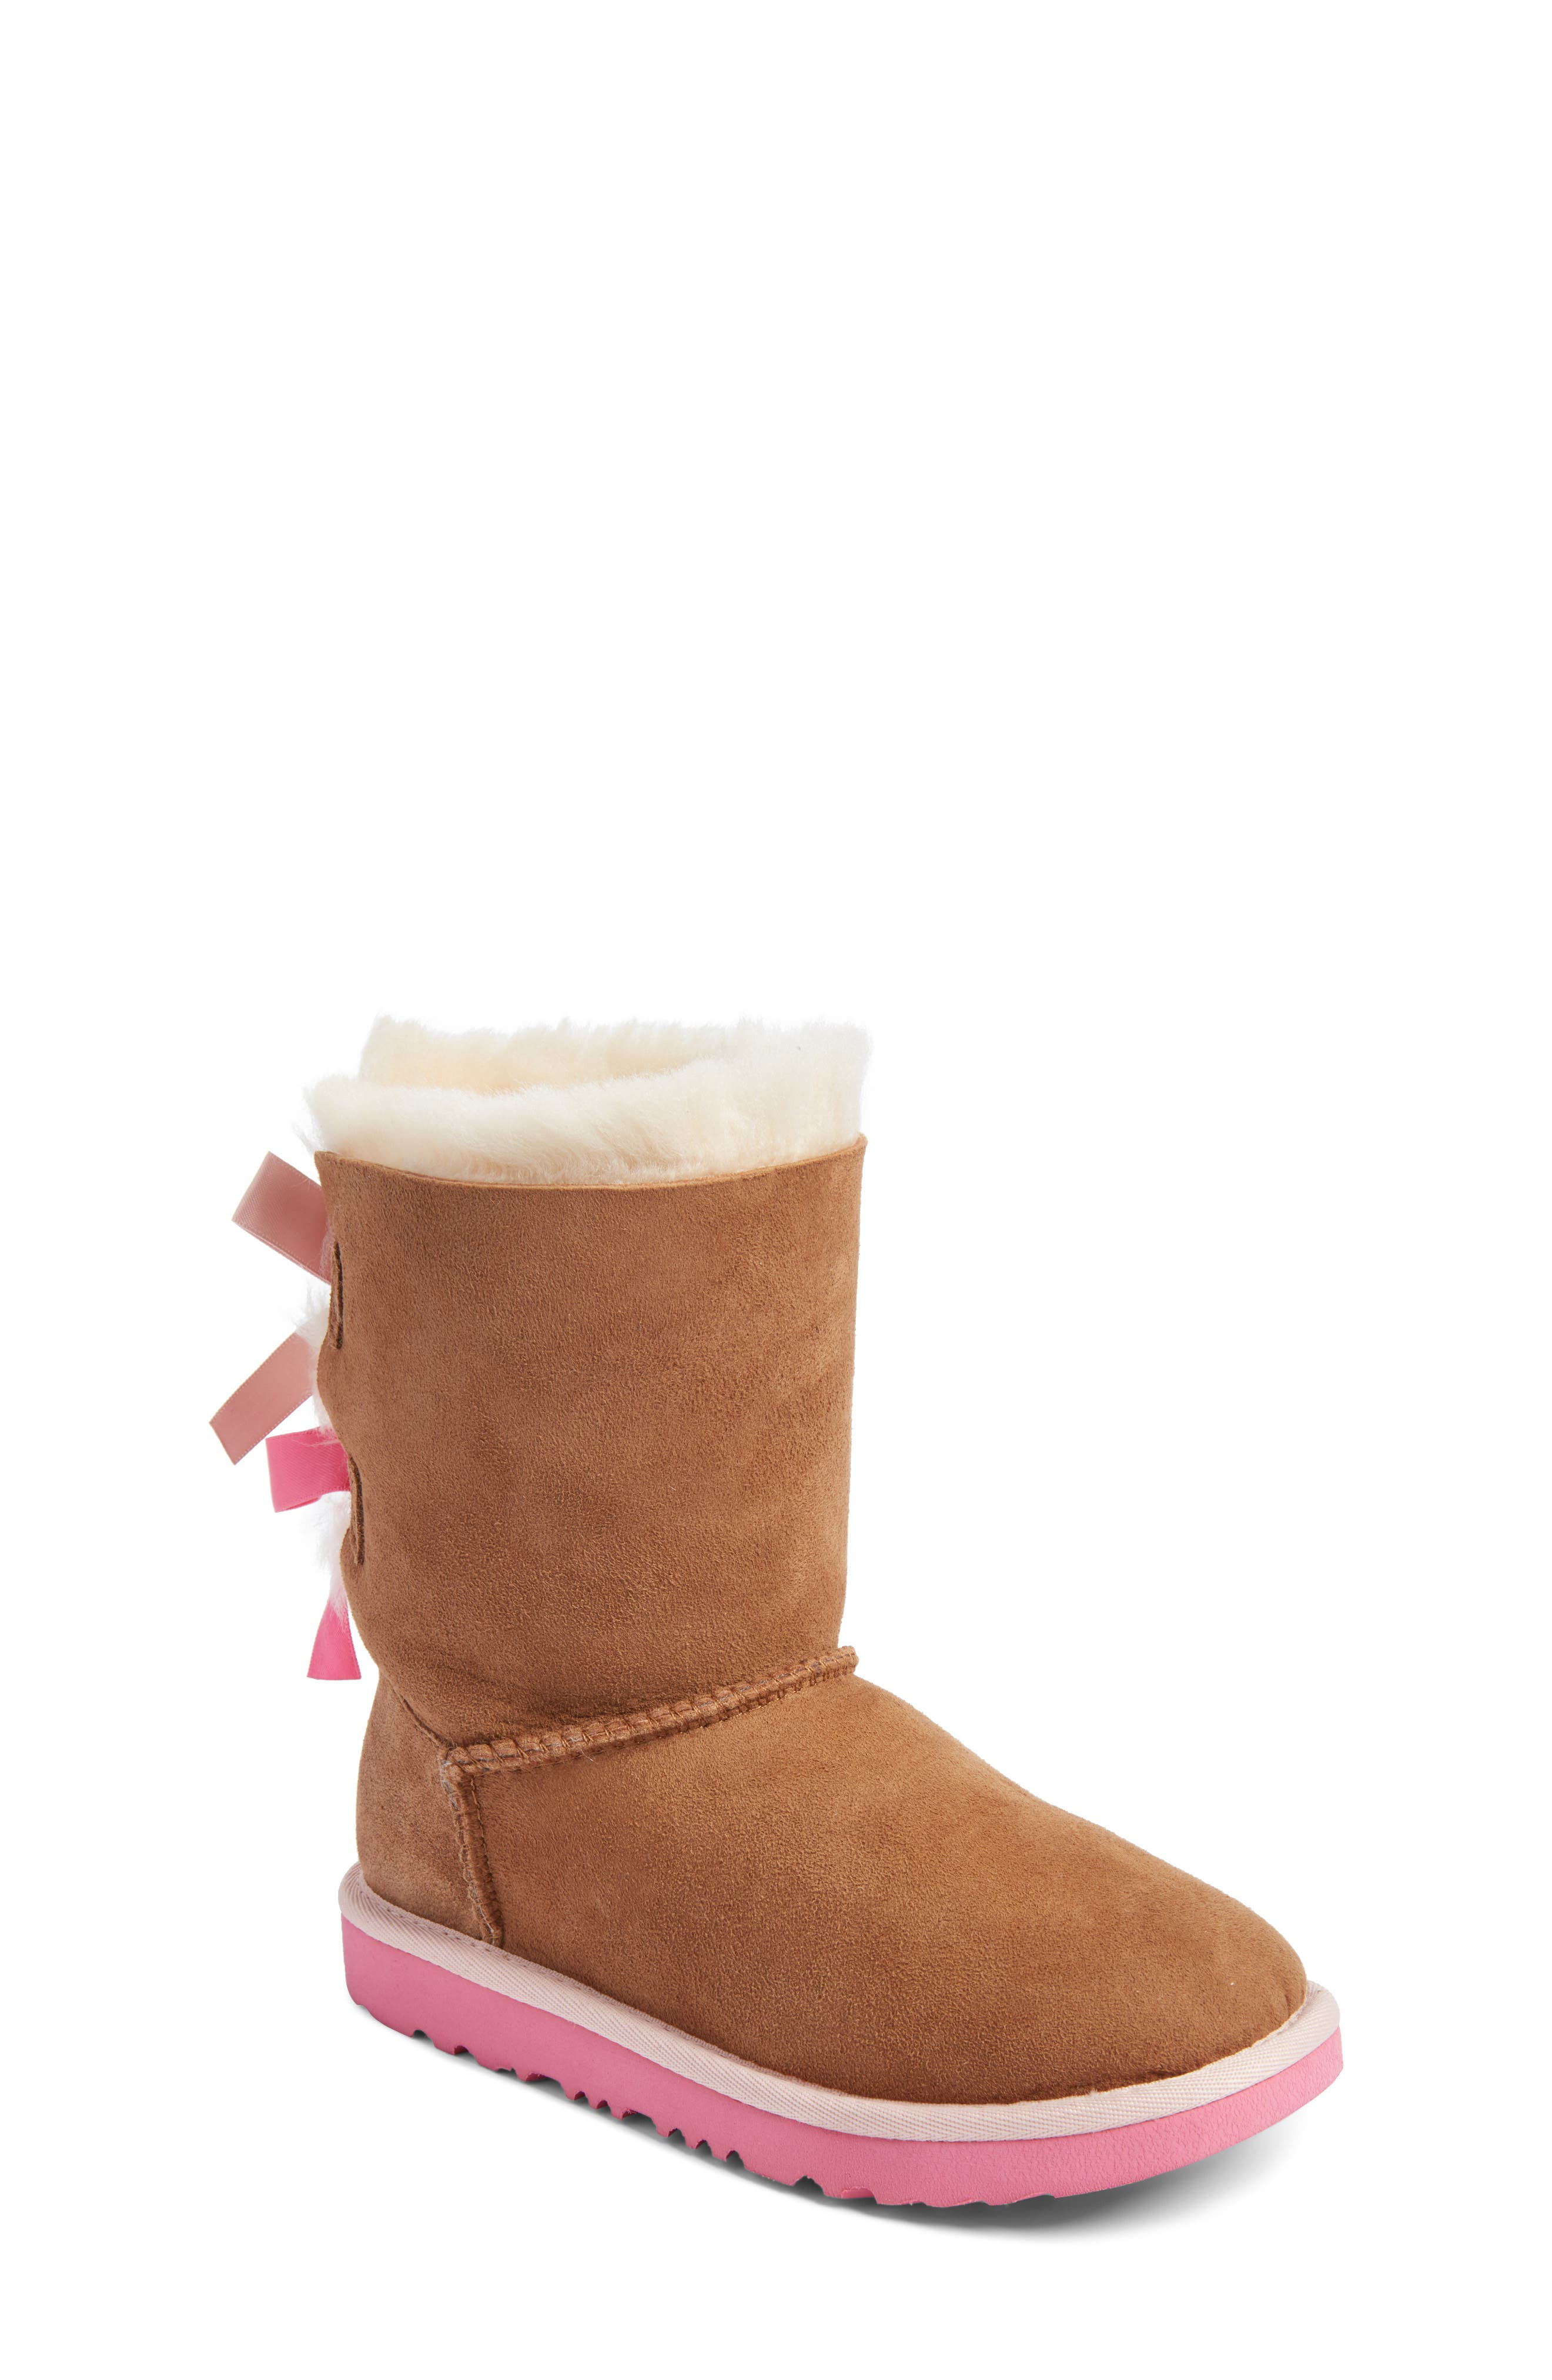 Main Image - UGG® Bailey Bow II Water Resistant Genuine Shearling Boot (Walker, Toddler, Little Kid & Big Kid)